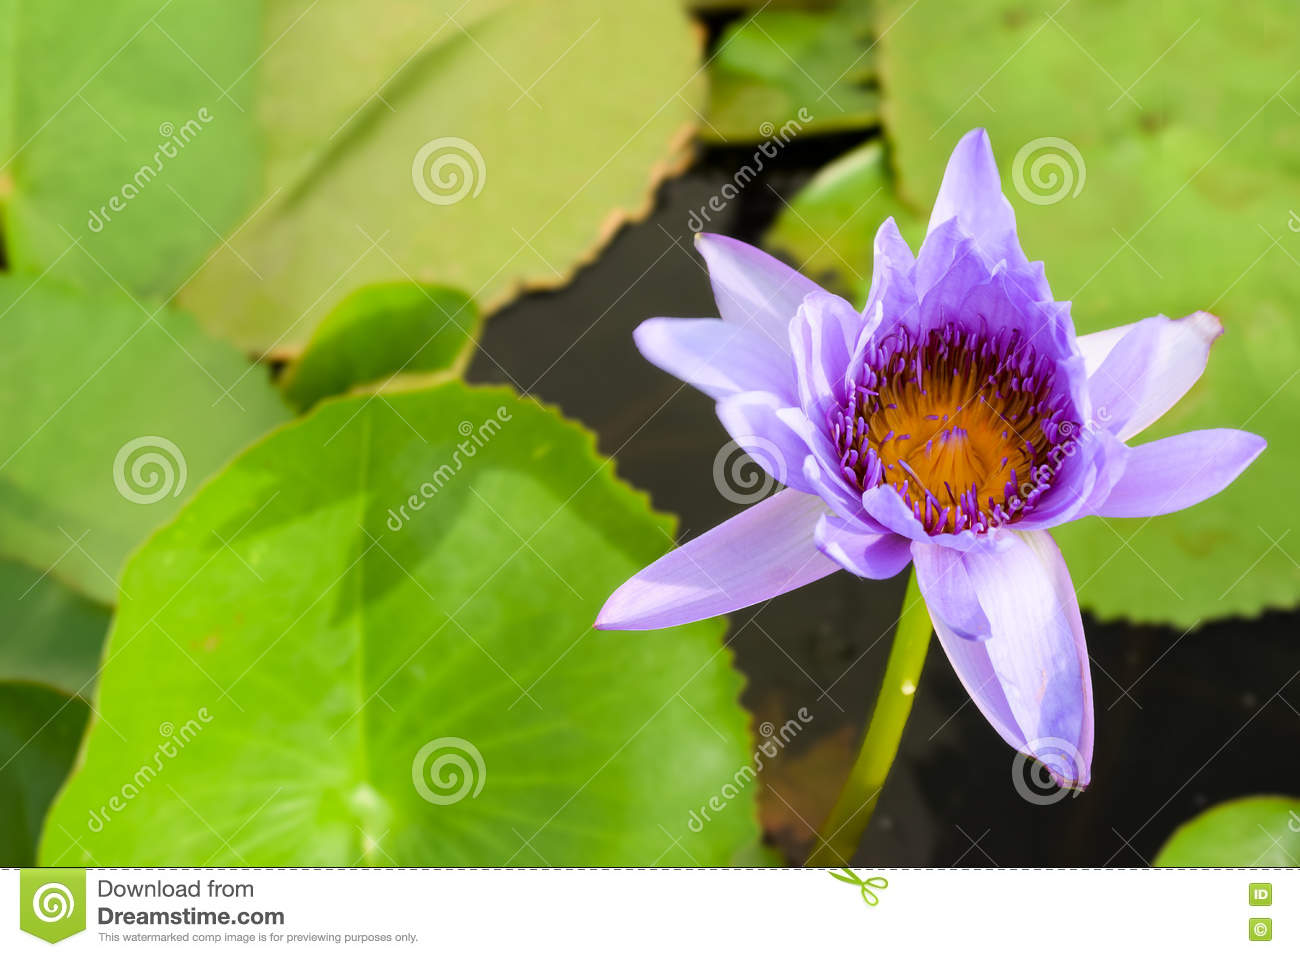 Single blue water lily nymphaeaceae with green lily pad background single blue water lily nymphaeaceae with green lily pad background blue water lilies are the birth flower of july and the national flower of sri lanka izmirmasajfo